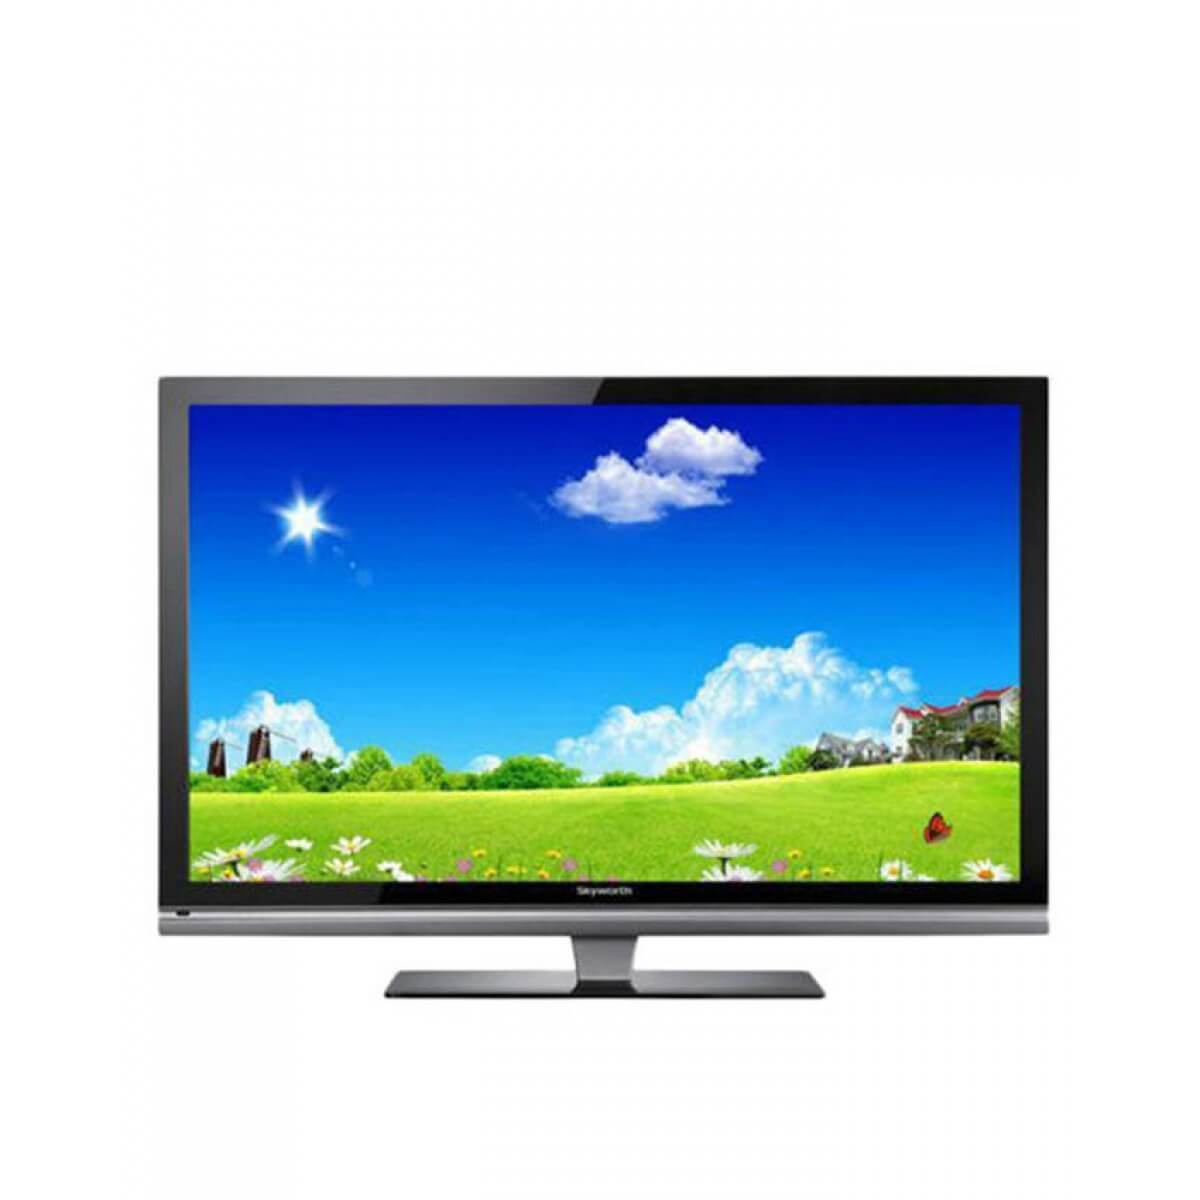 "Hisense 32"" LED TV - TV 32 N2176H - Dool-X IT Republic"